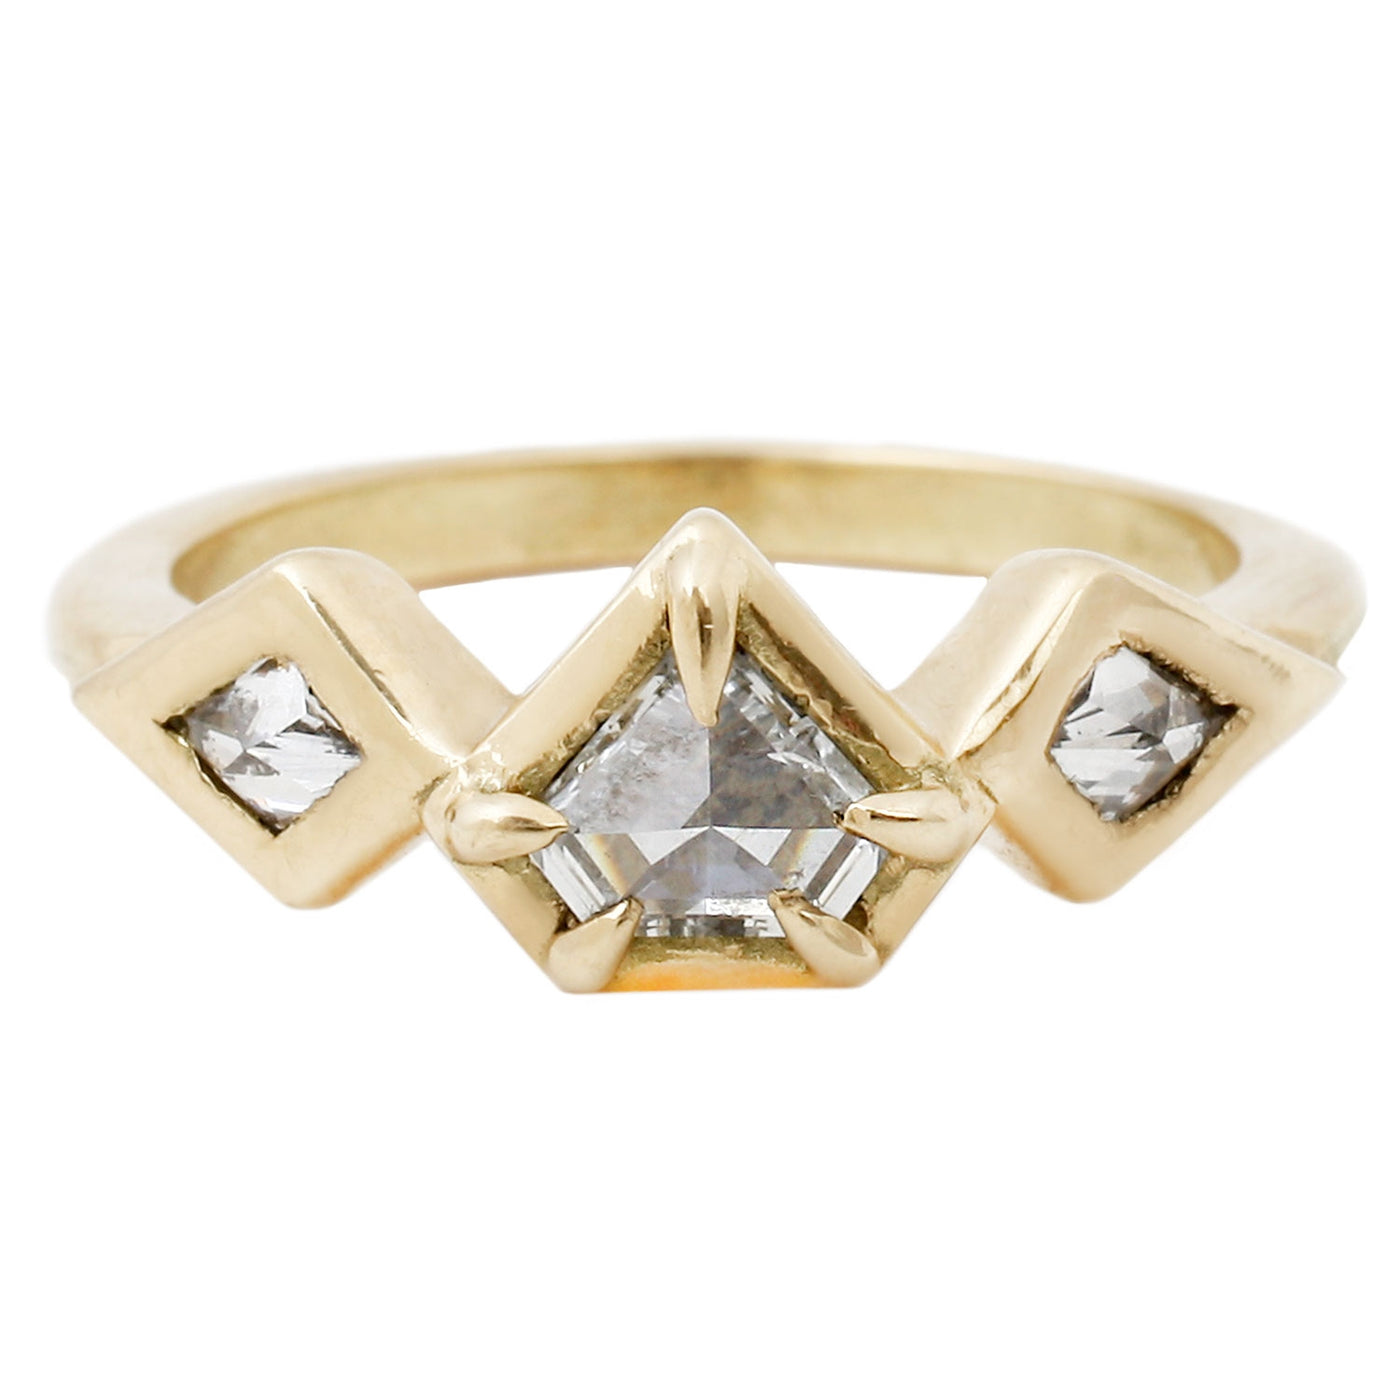 Demi Prism Diamond Ring